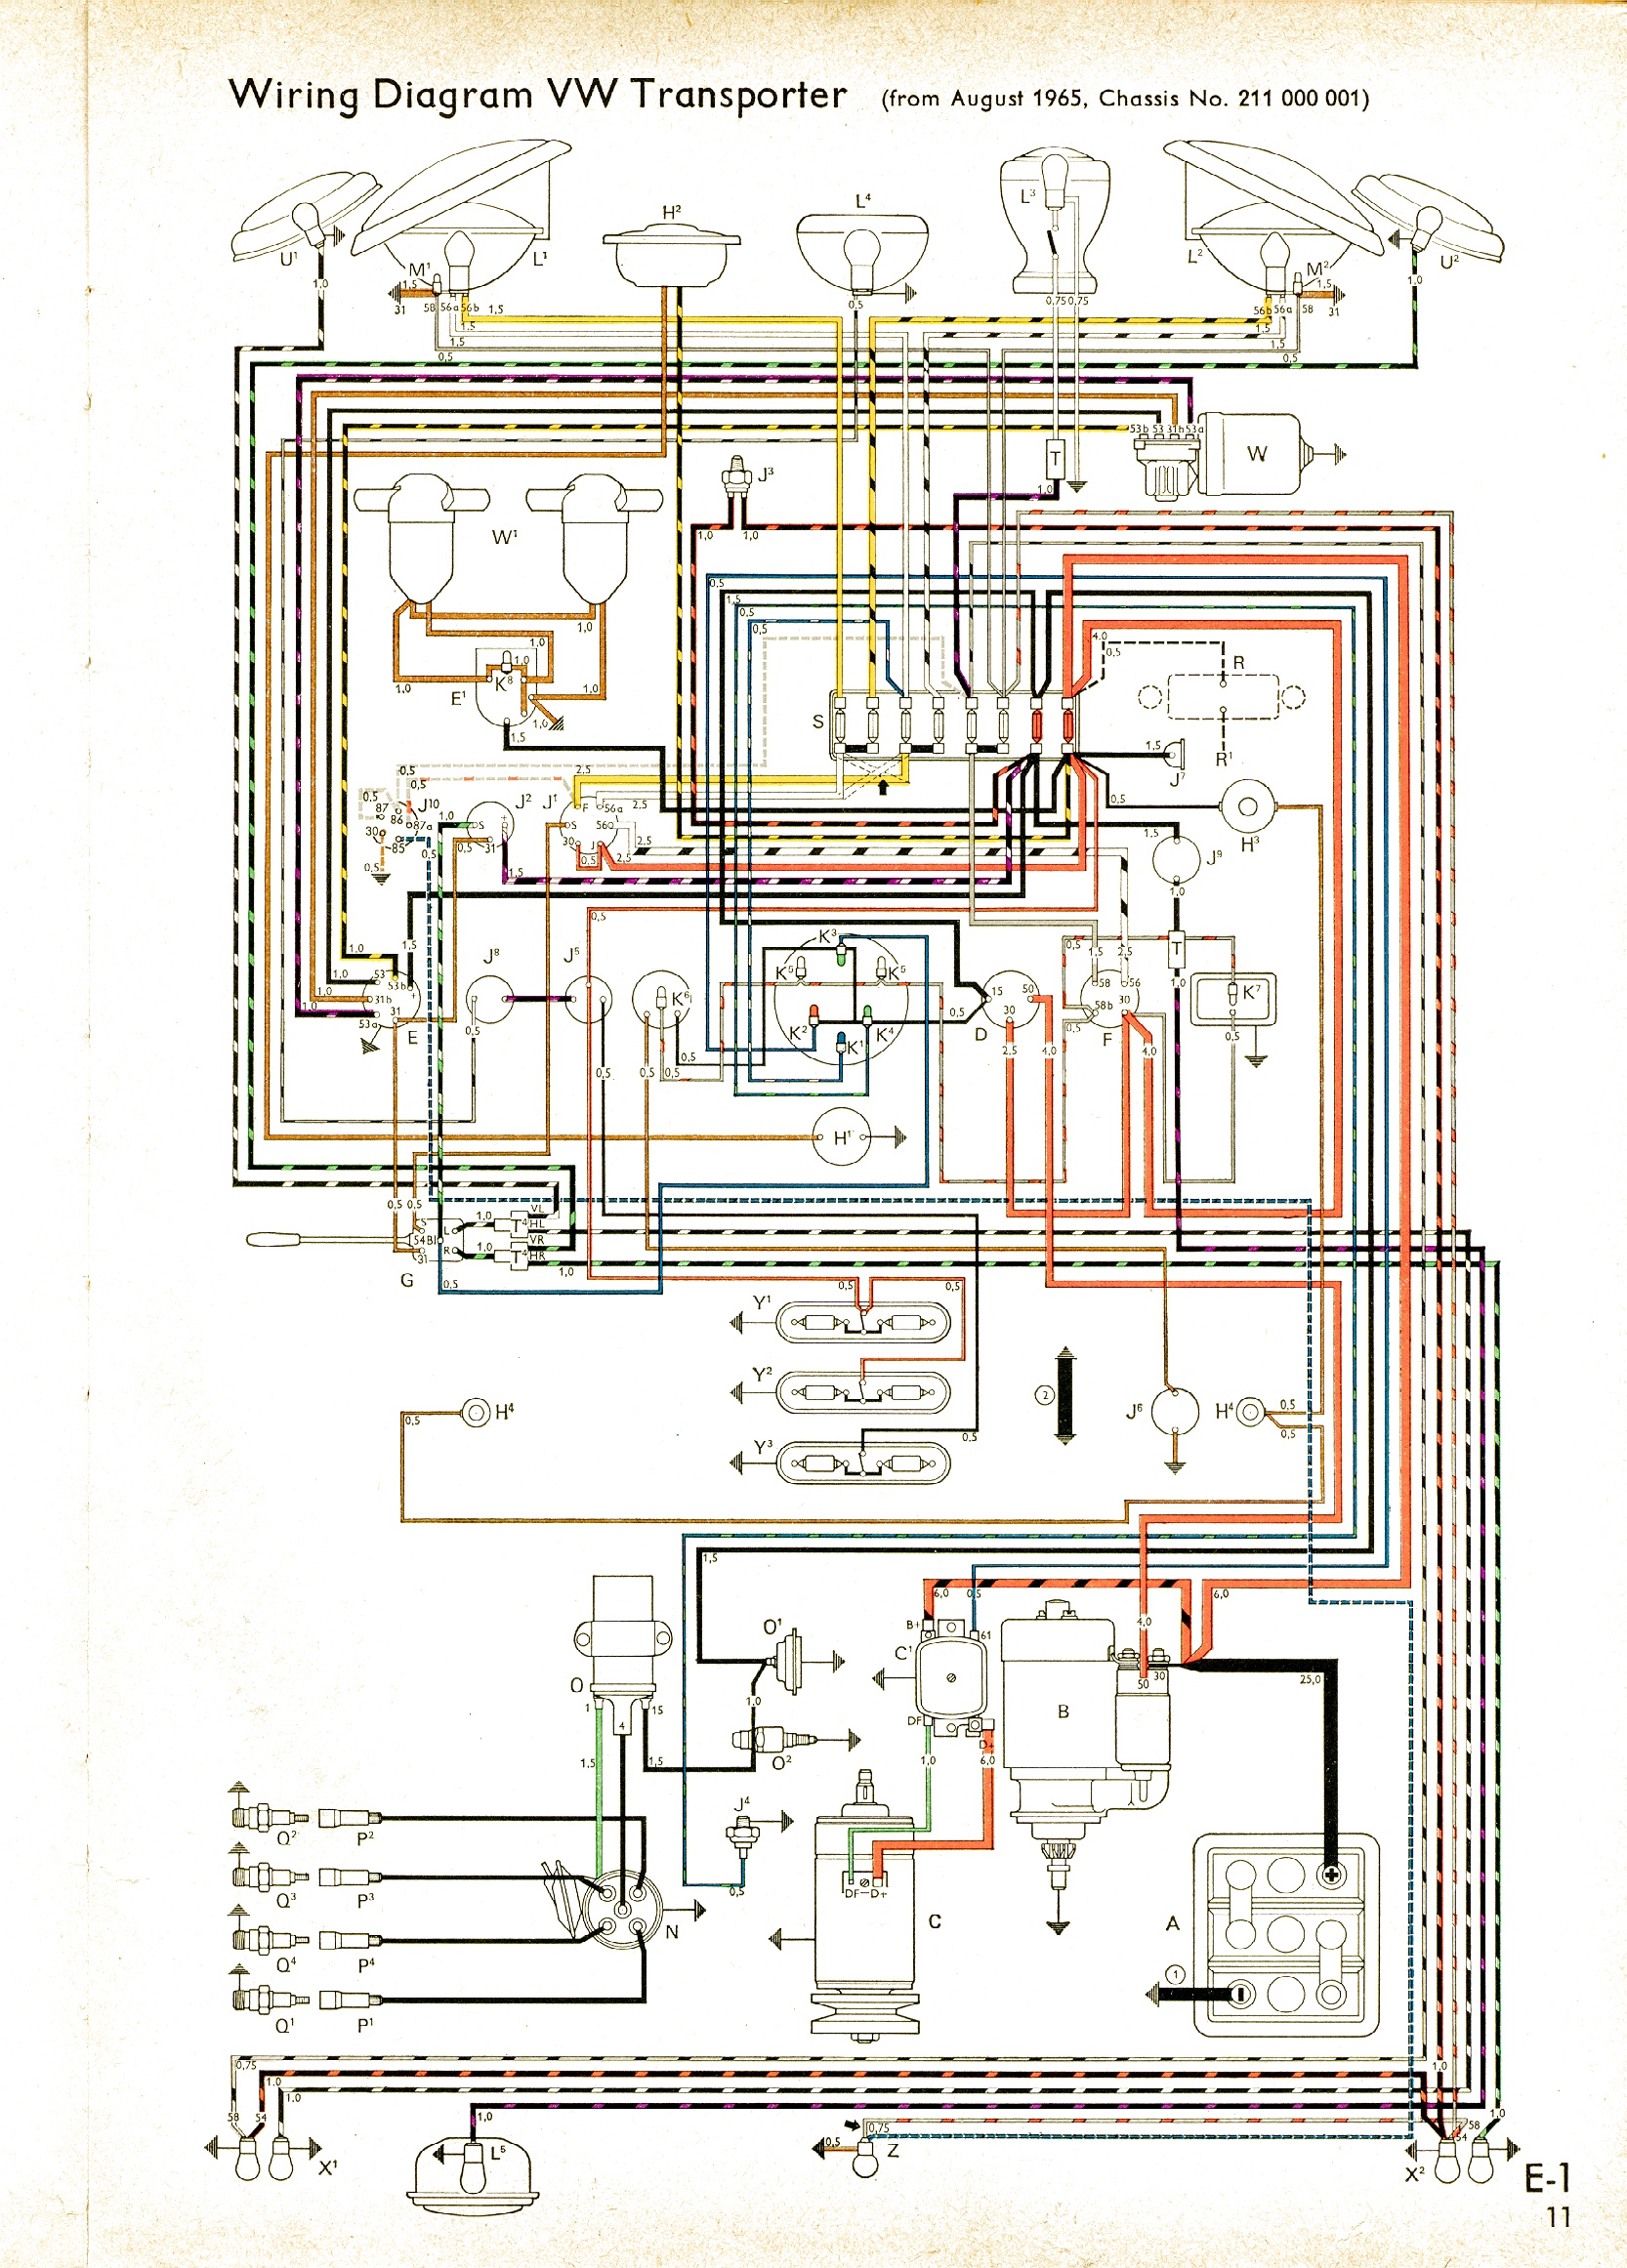 bus 65 vintagebus com vw bus (and other) wiring diagrams 1968 vw bus wiring diagram at bakdesigns.co